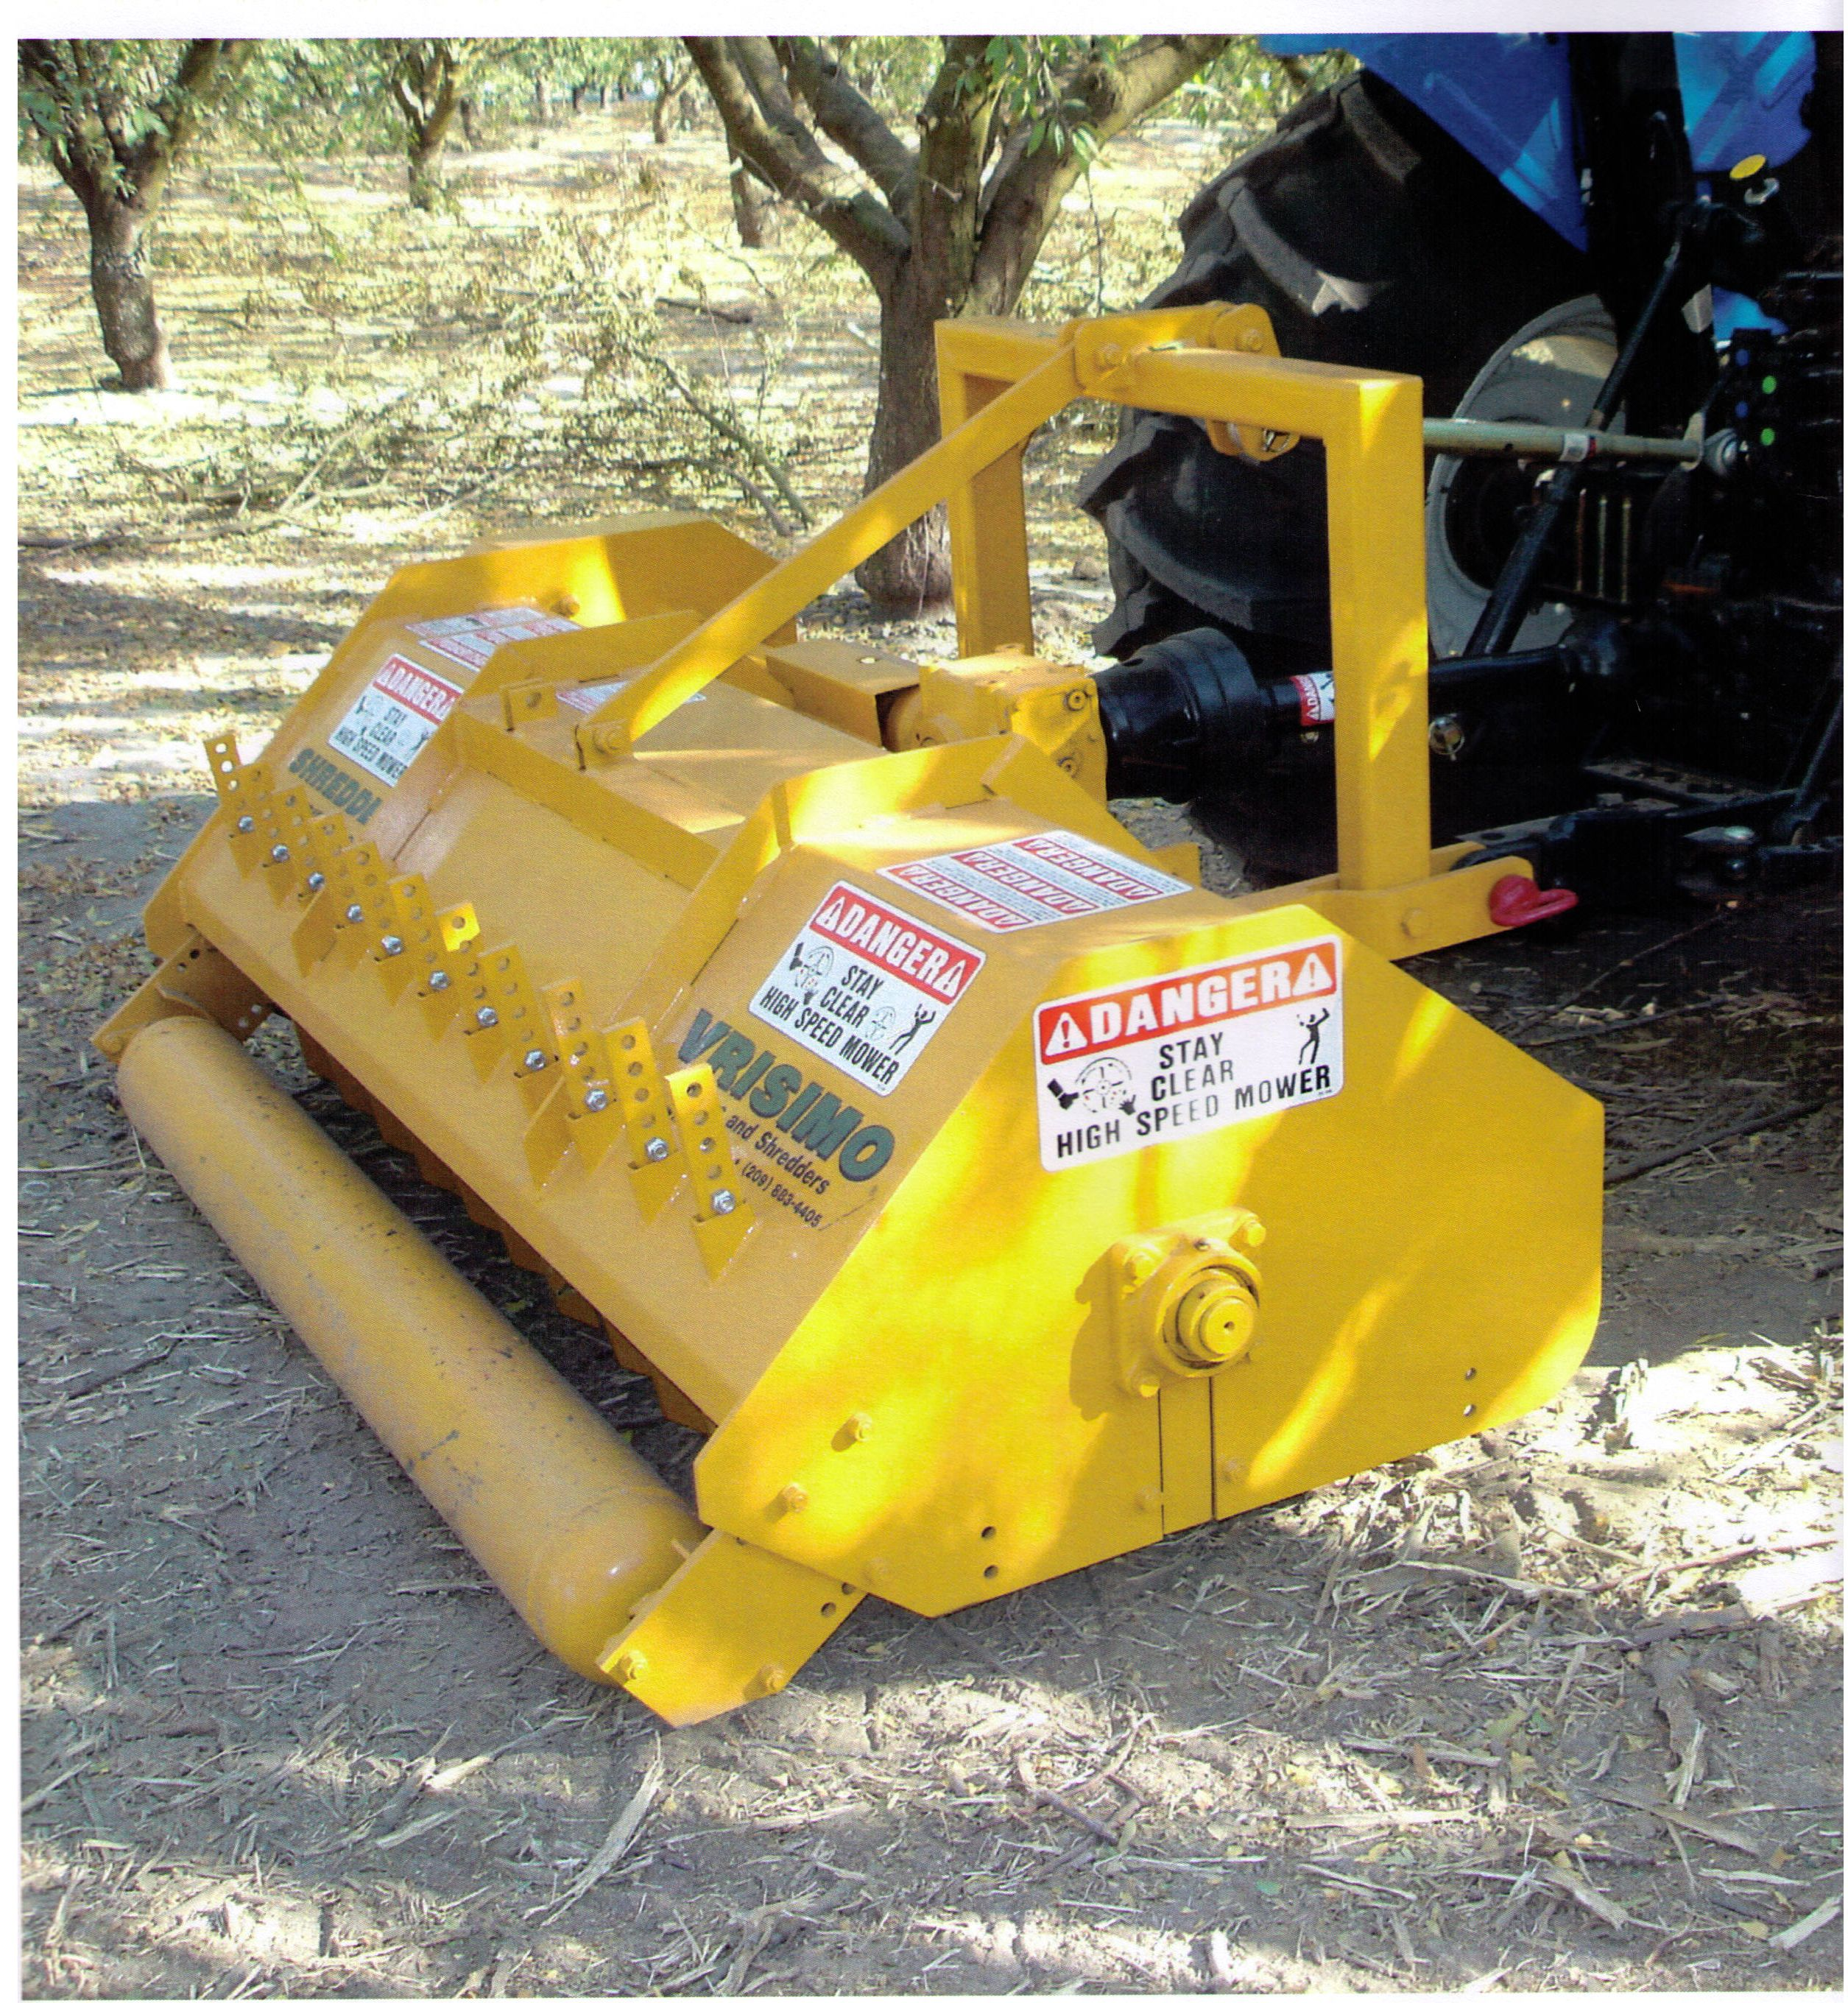 300 Series Brush Shredder